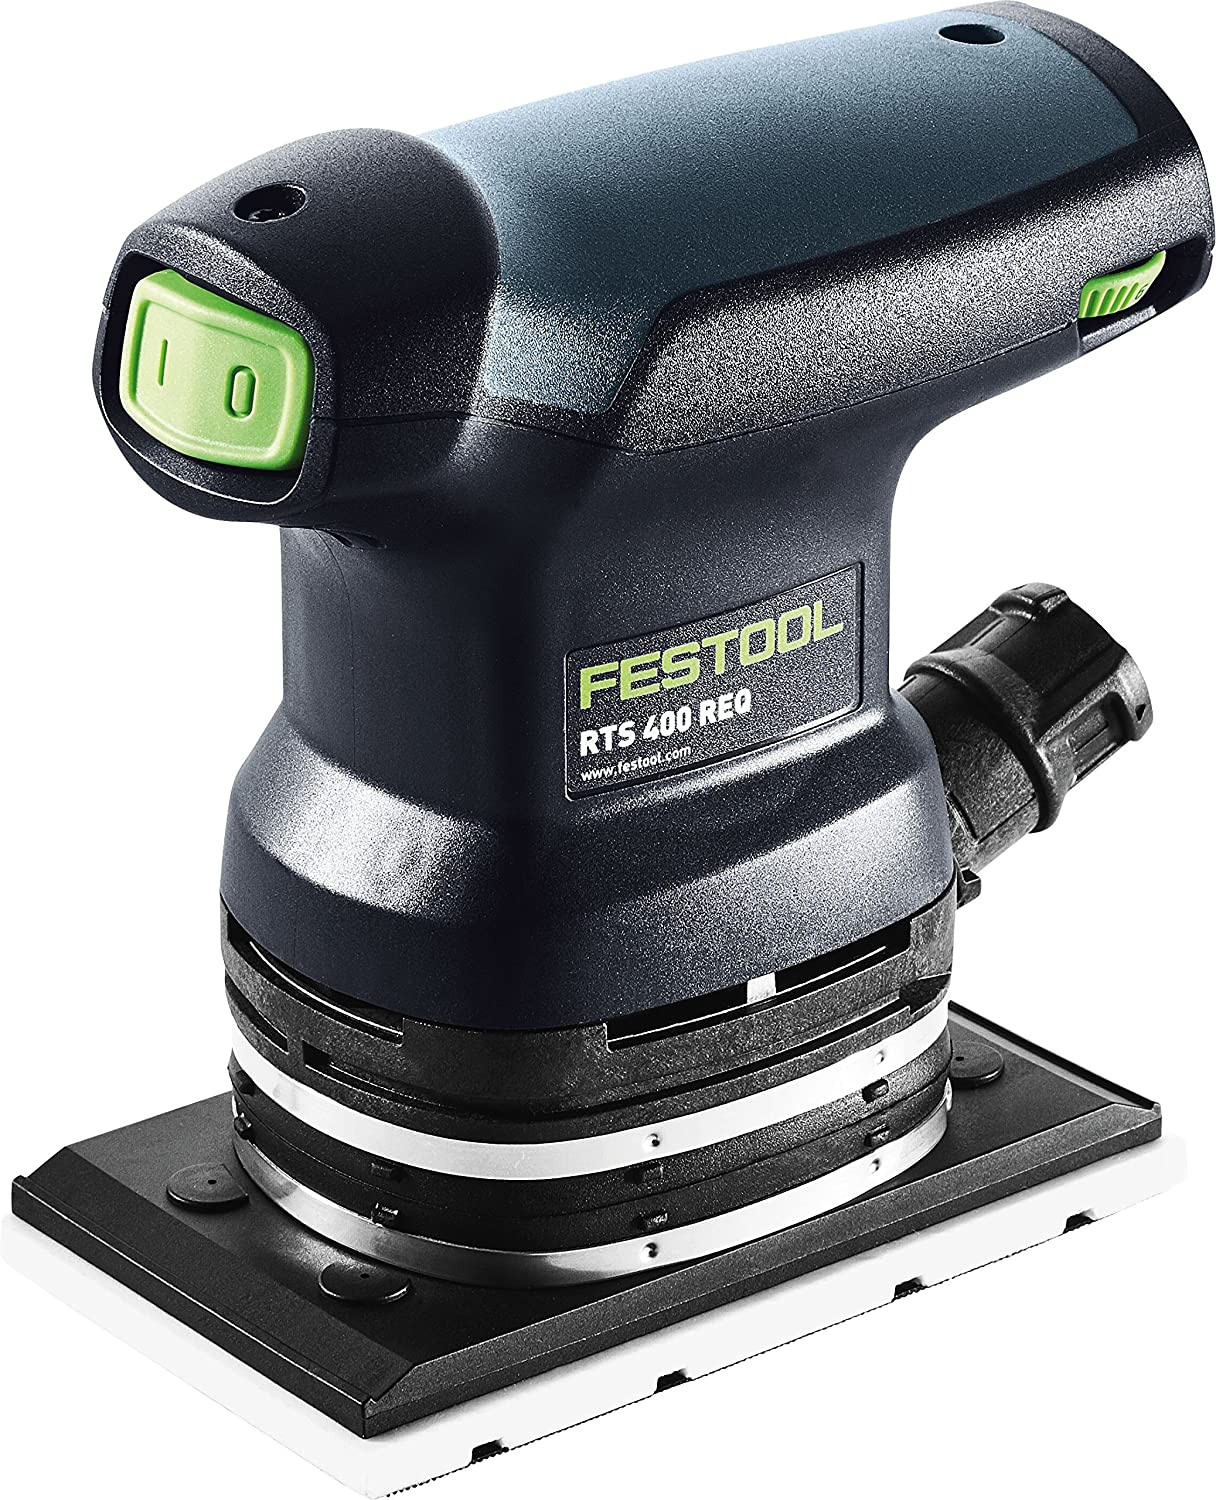 Festool 201221 featured image